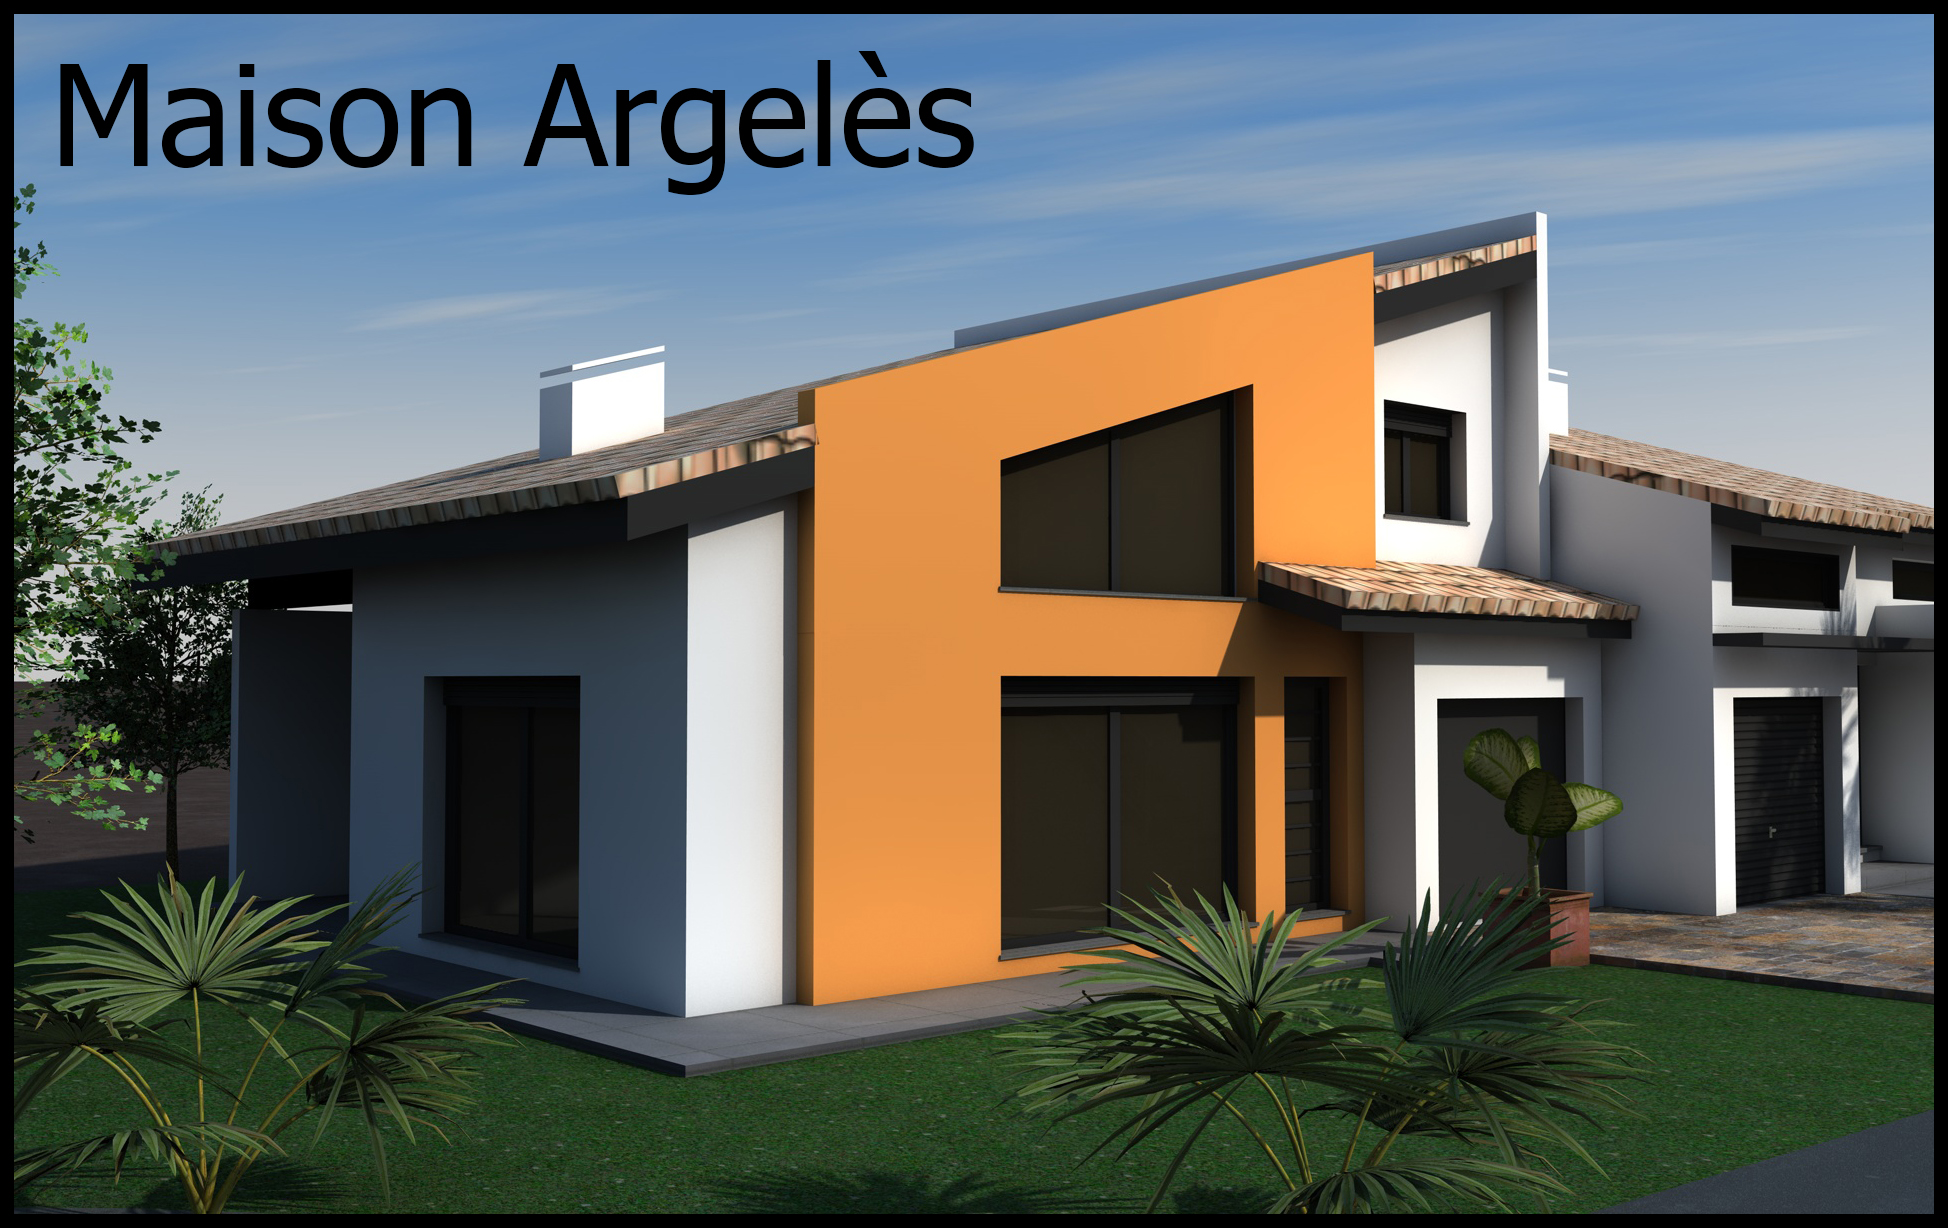 Argeles maison architecture moderne for Architecture maison